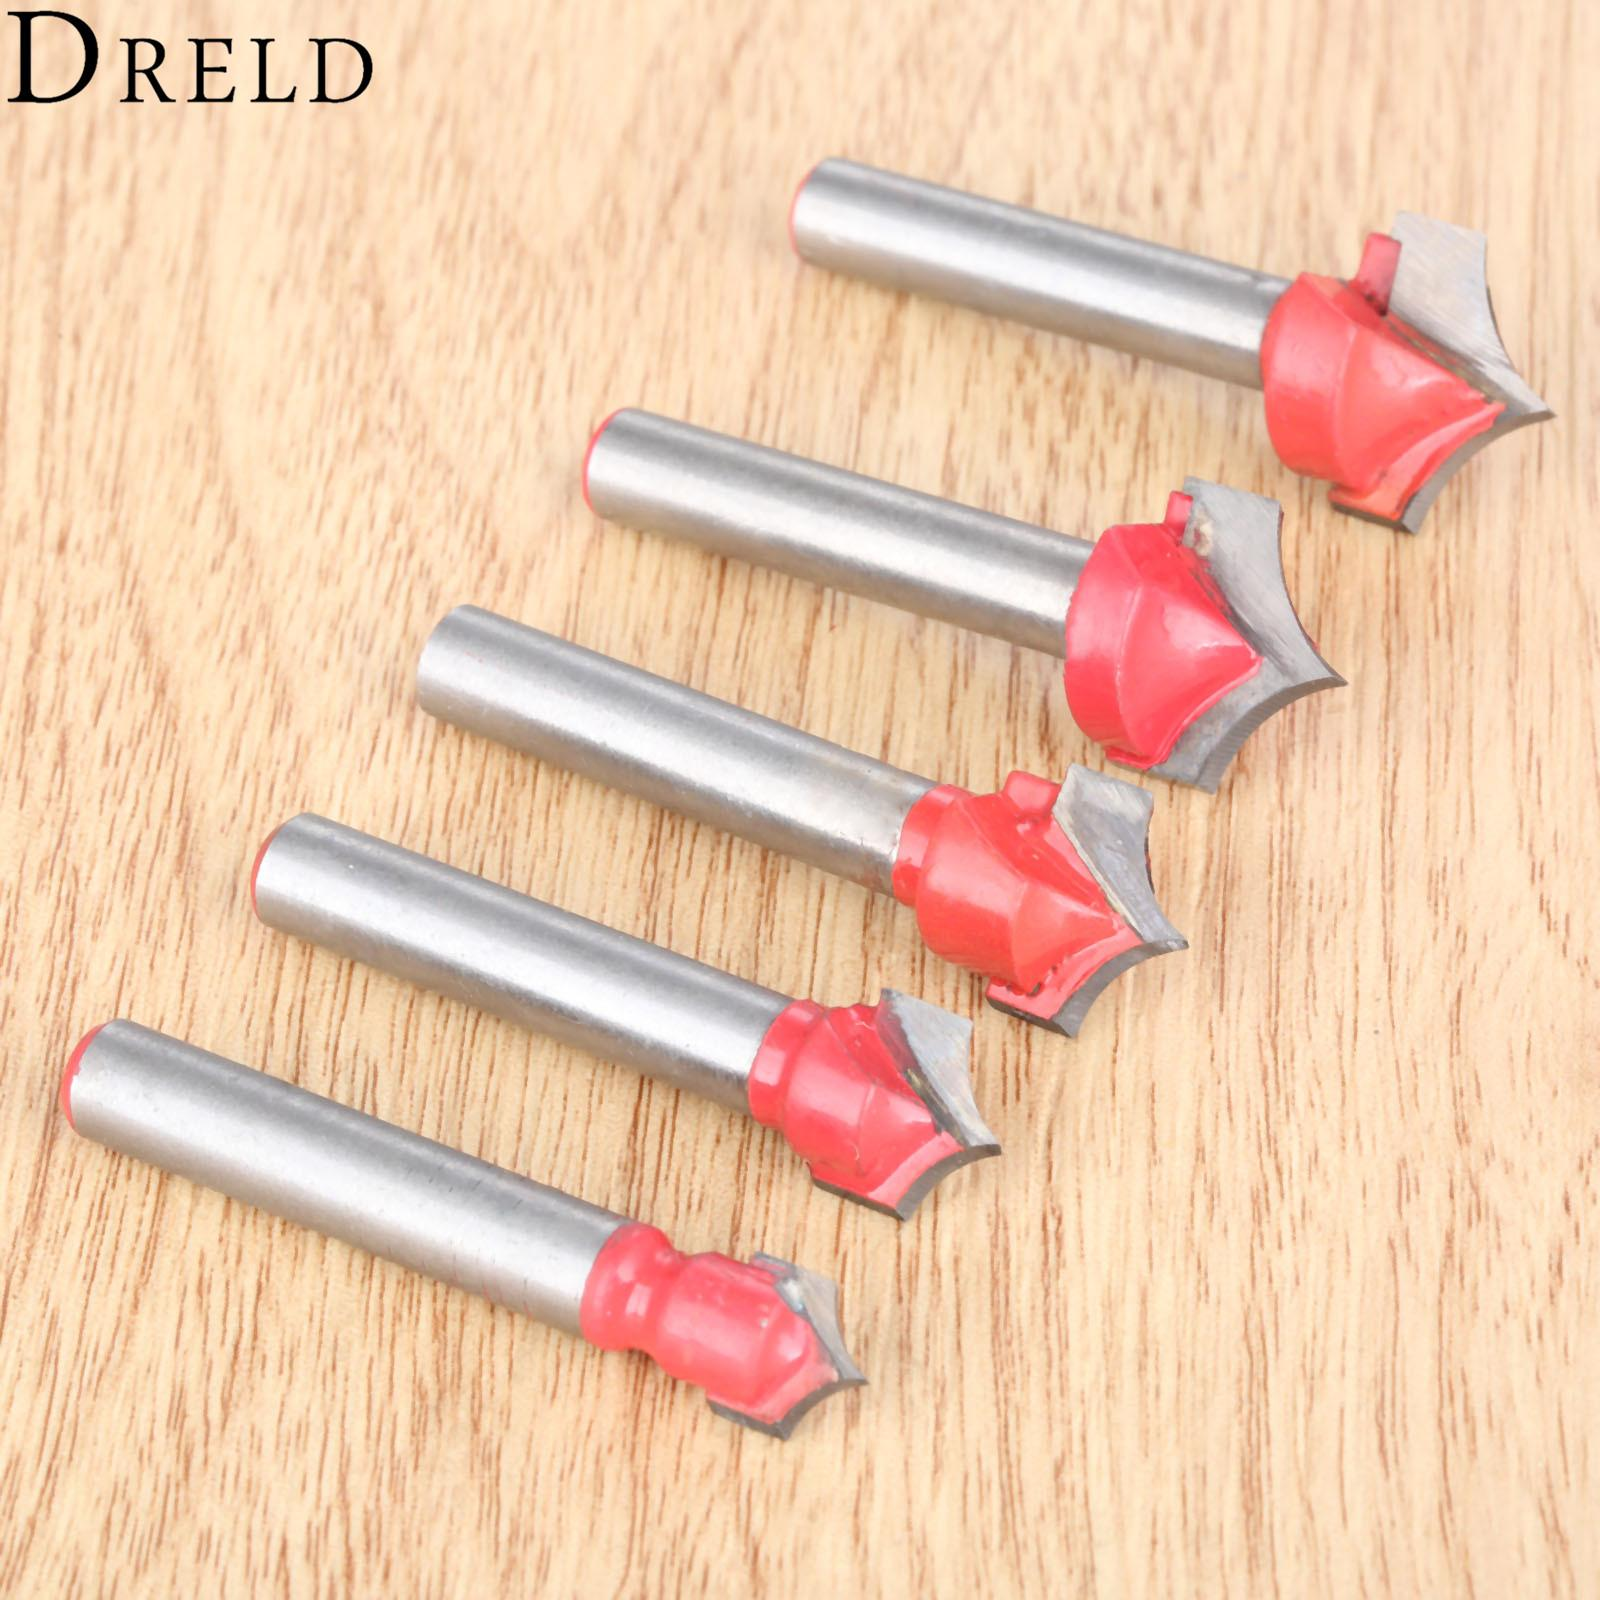 Milling Cutter DRELD 1pc 6mm Shank V Groove Router Bits CNC Engraving End  Mill Wood Carving Milling Cutter Wookwooking Carpentry Tools Fresa